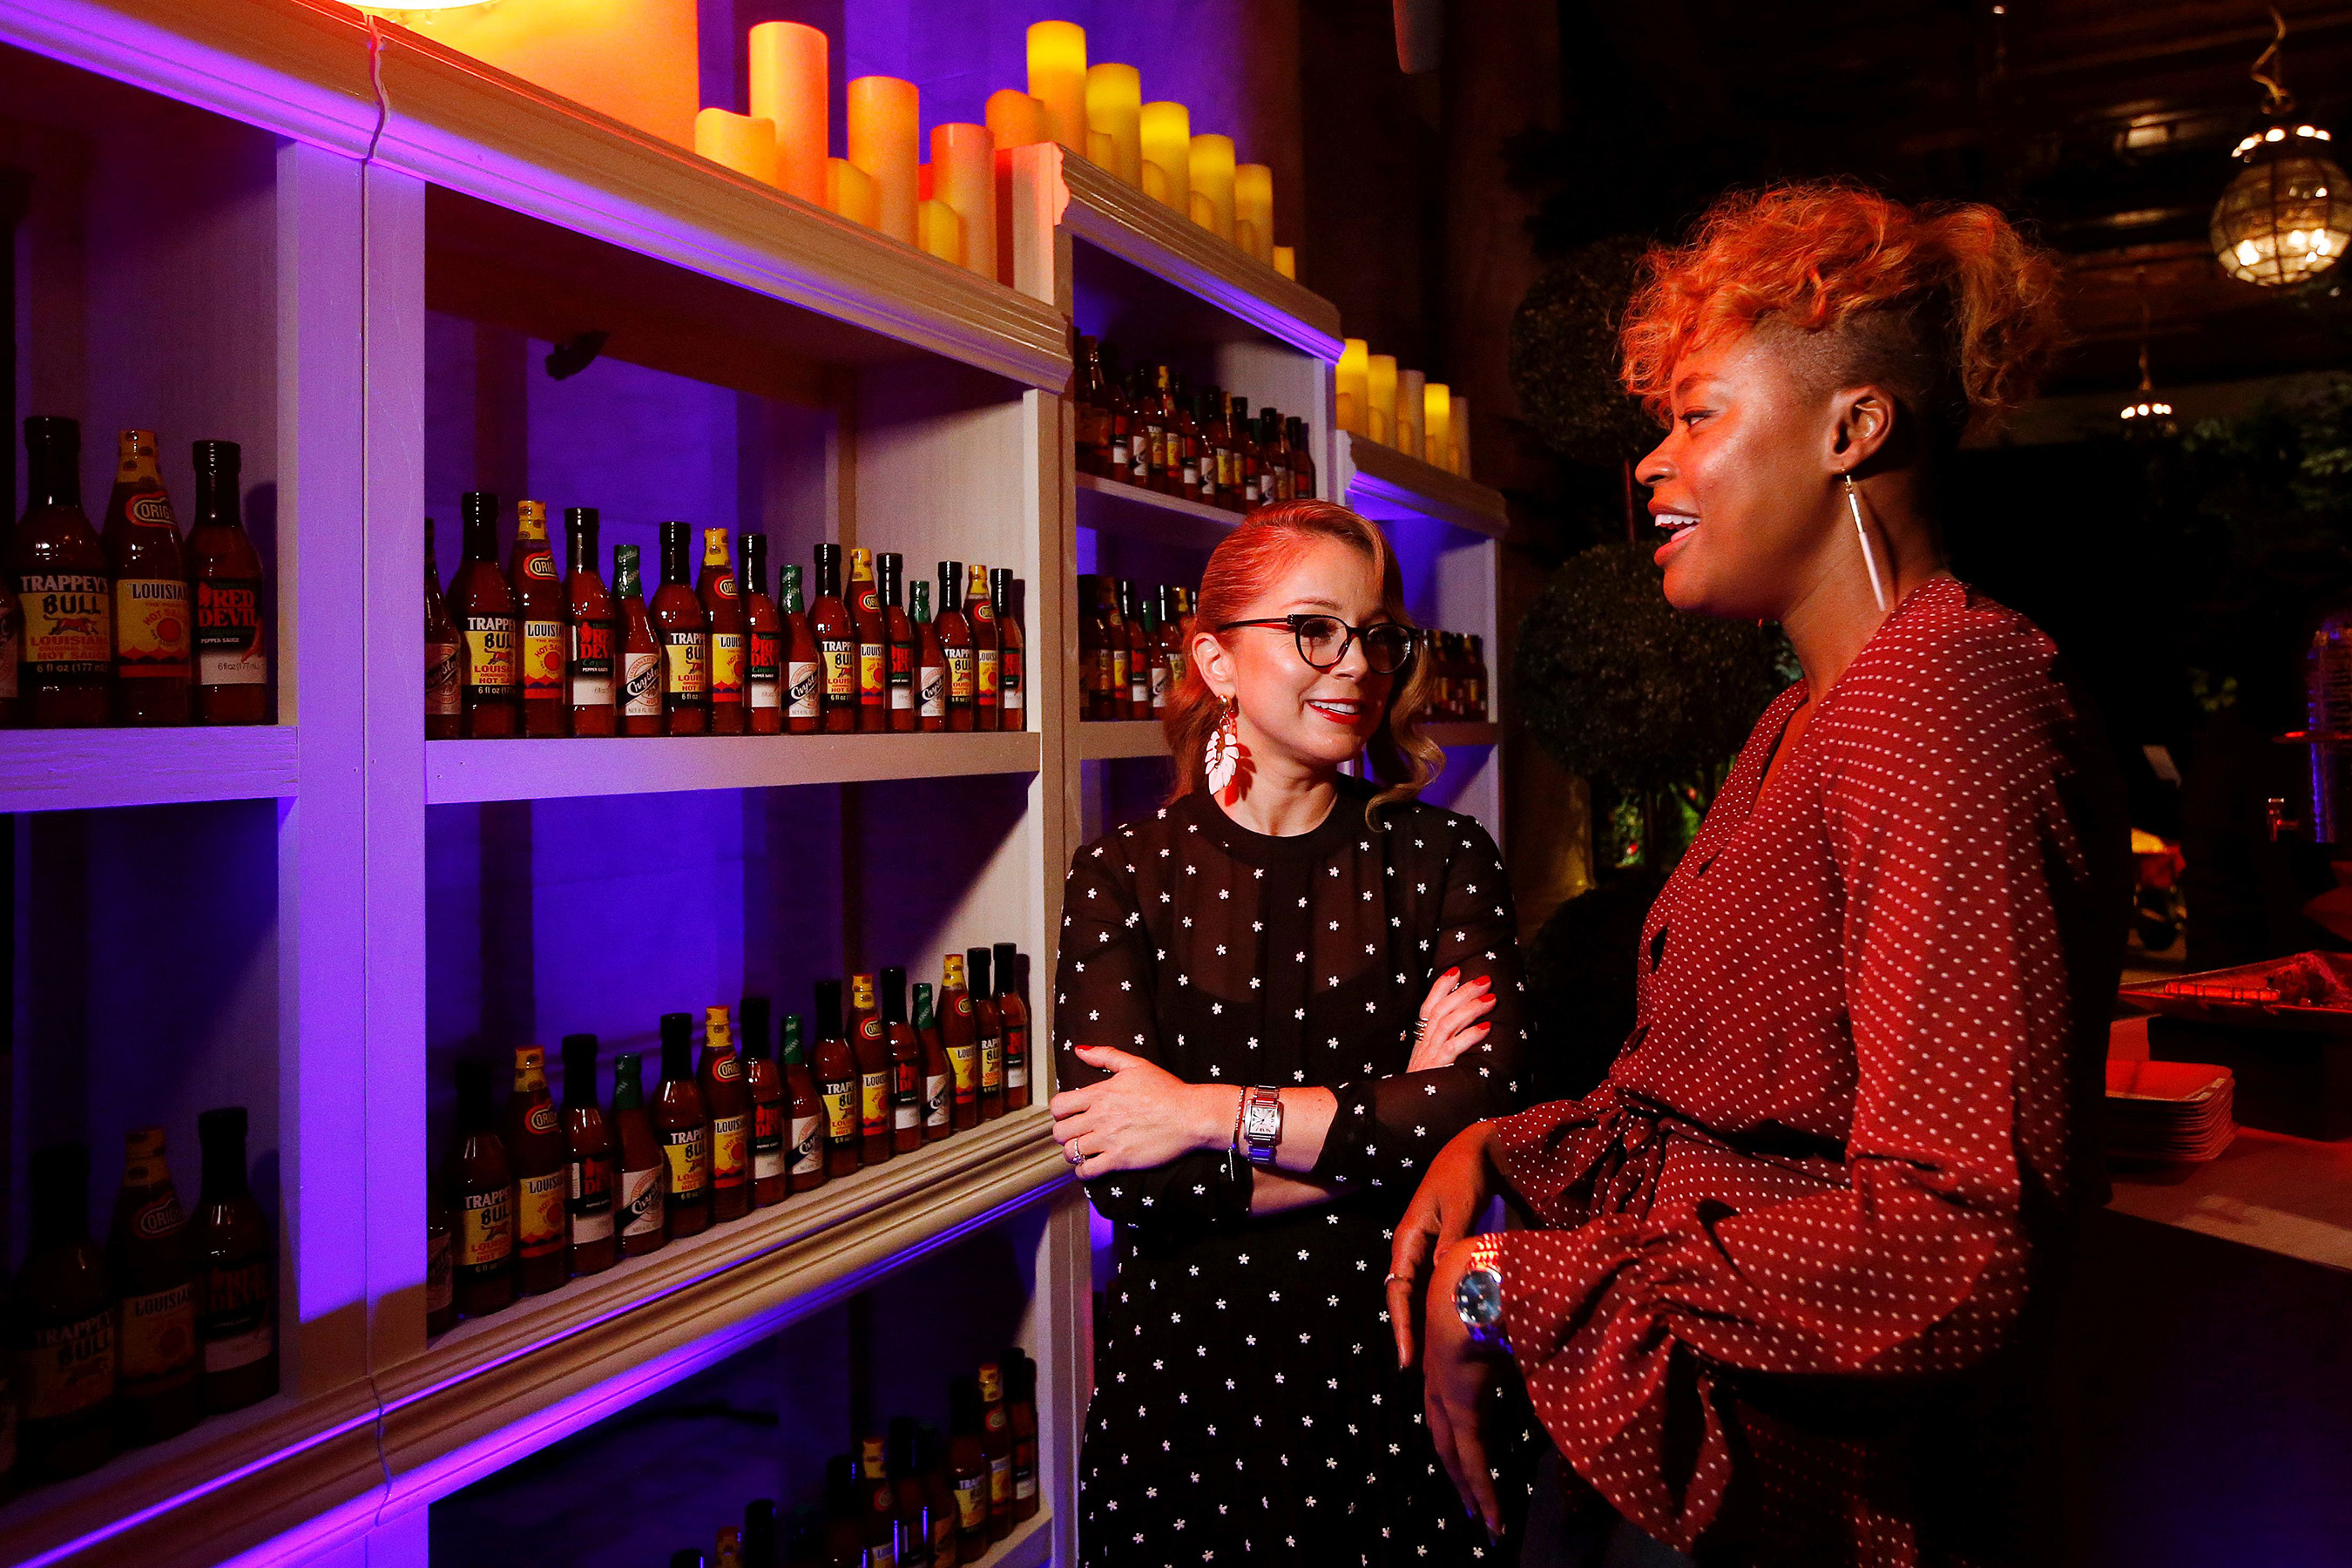 Marcela Valladolid and Noelle Scaggs discuss their upcoming food-filled trip to New Orleans at a launch event for the Purpose Project(SM) by Capital One®, Wednesday, October 24, 2018, in New York. (Jason DeCrow/AP Images for Capital One)